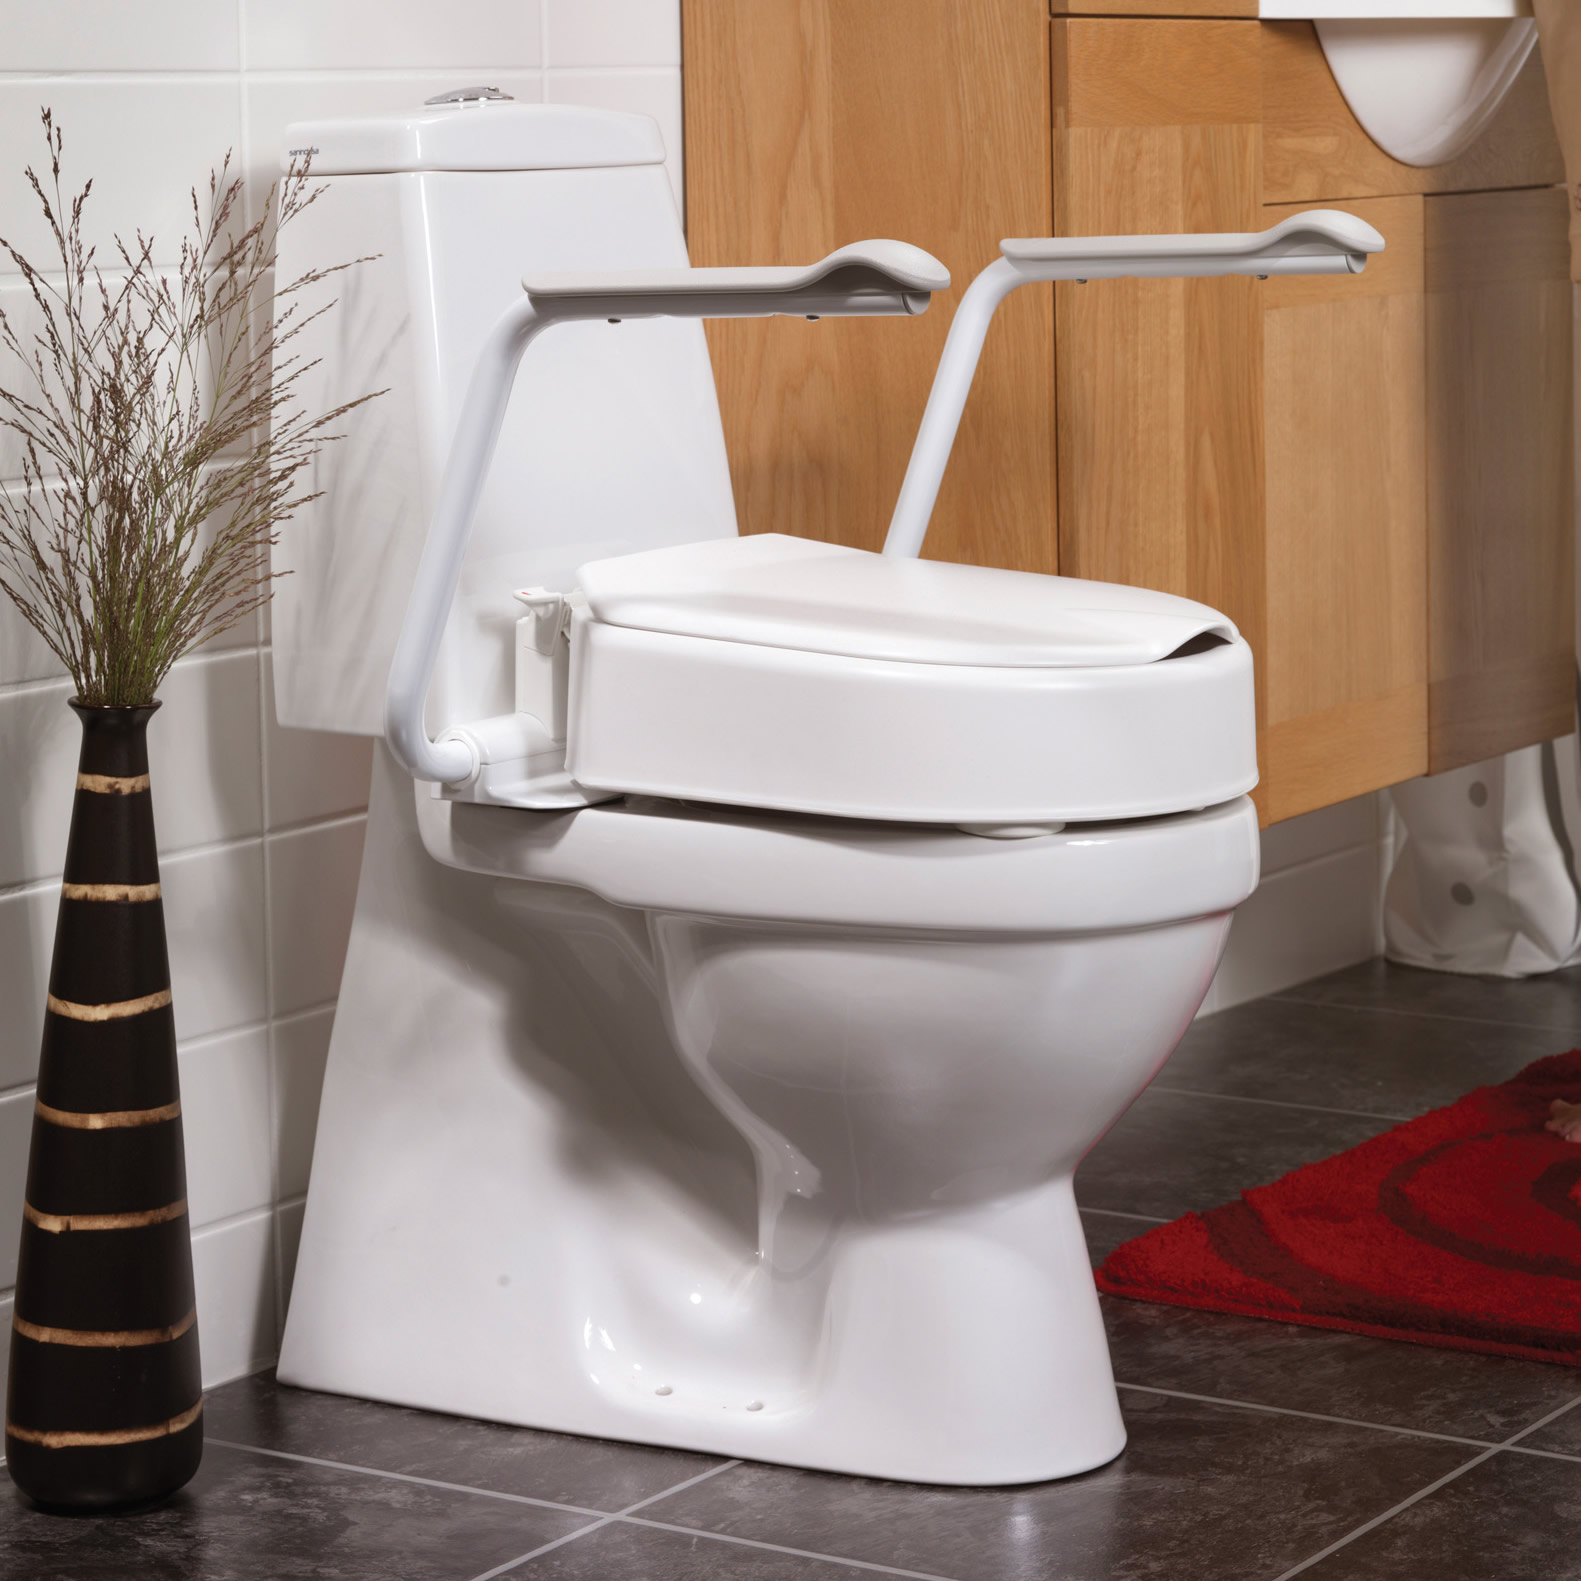 senior citizen potty chair cover rental victoria bc 7 tips for creating a friendly bathroom macdonald